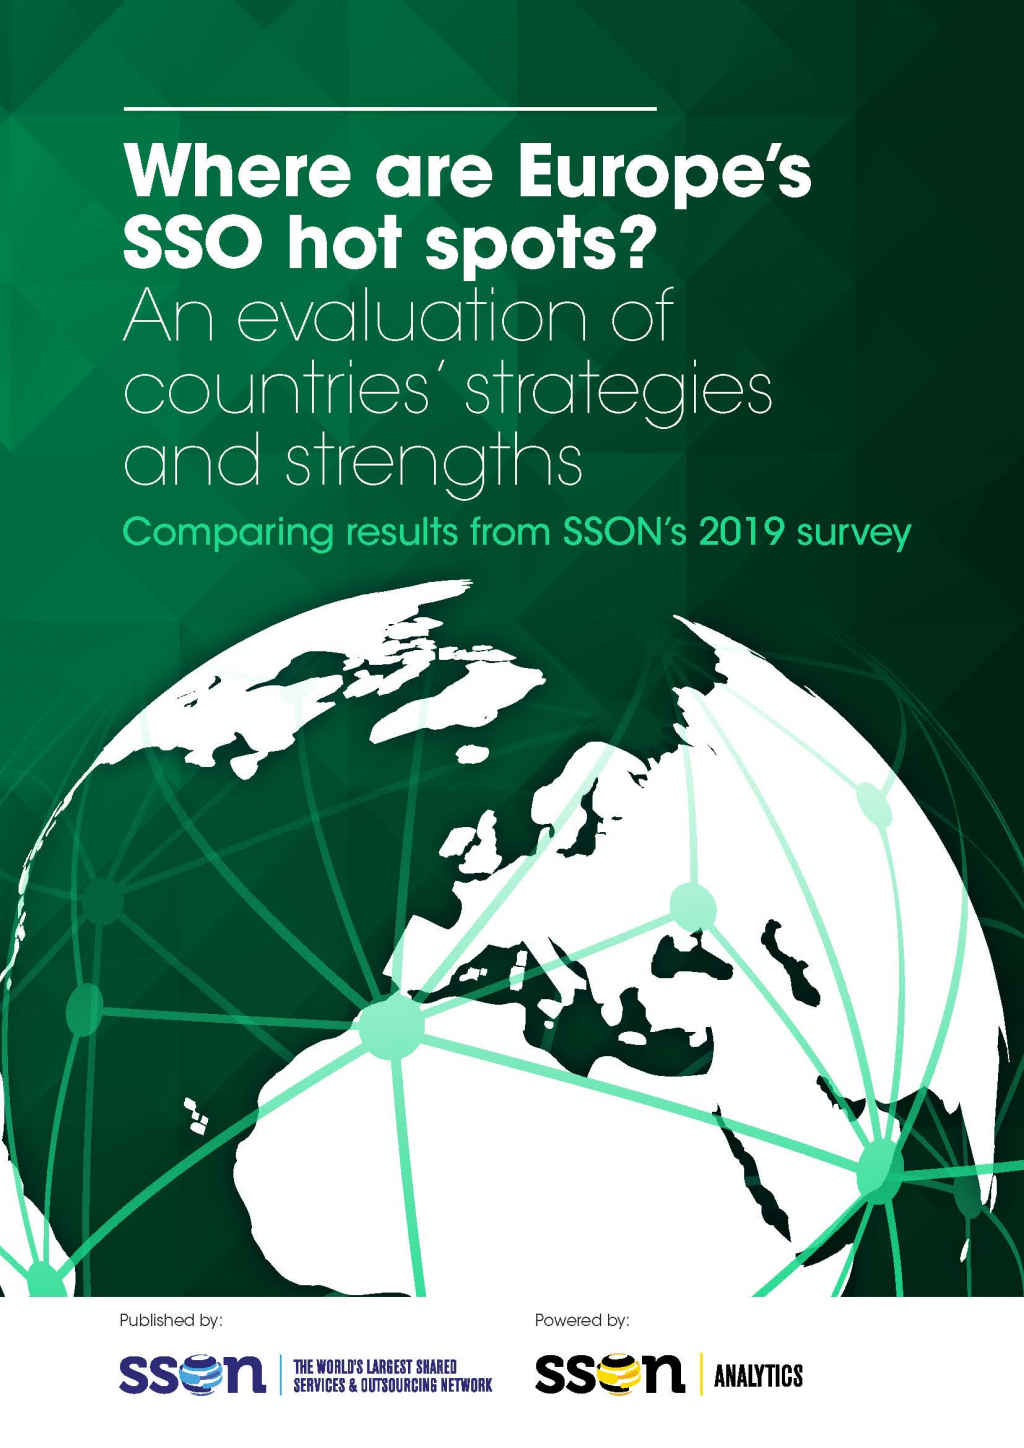 Where are Europe's SSO hot spots? An evaluation of countries' strategies and strengths